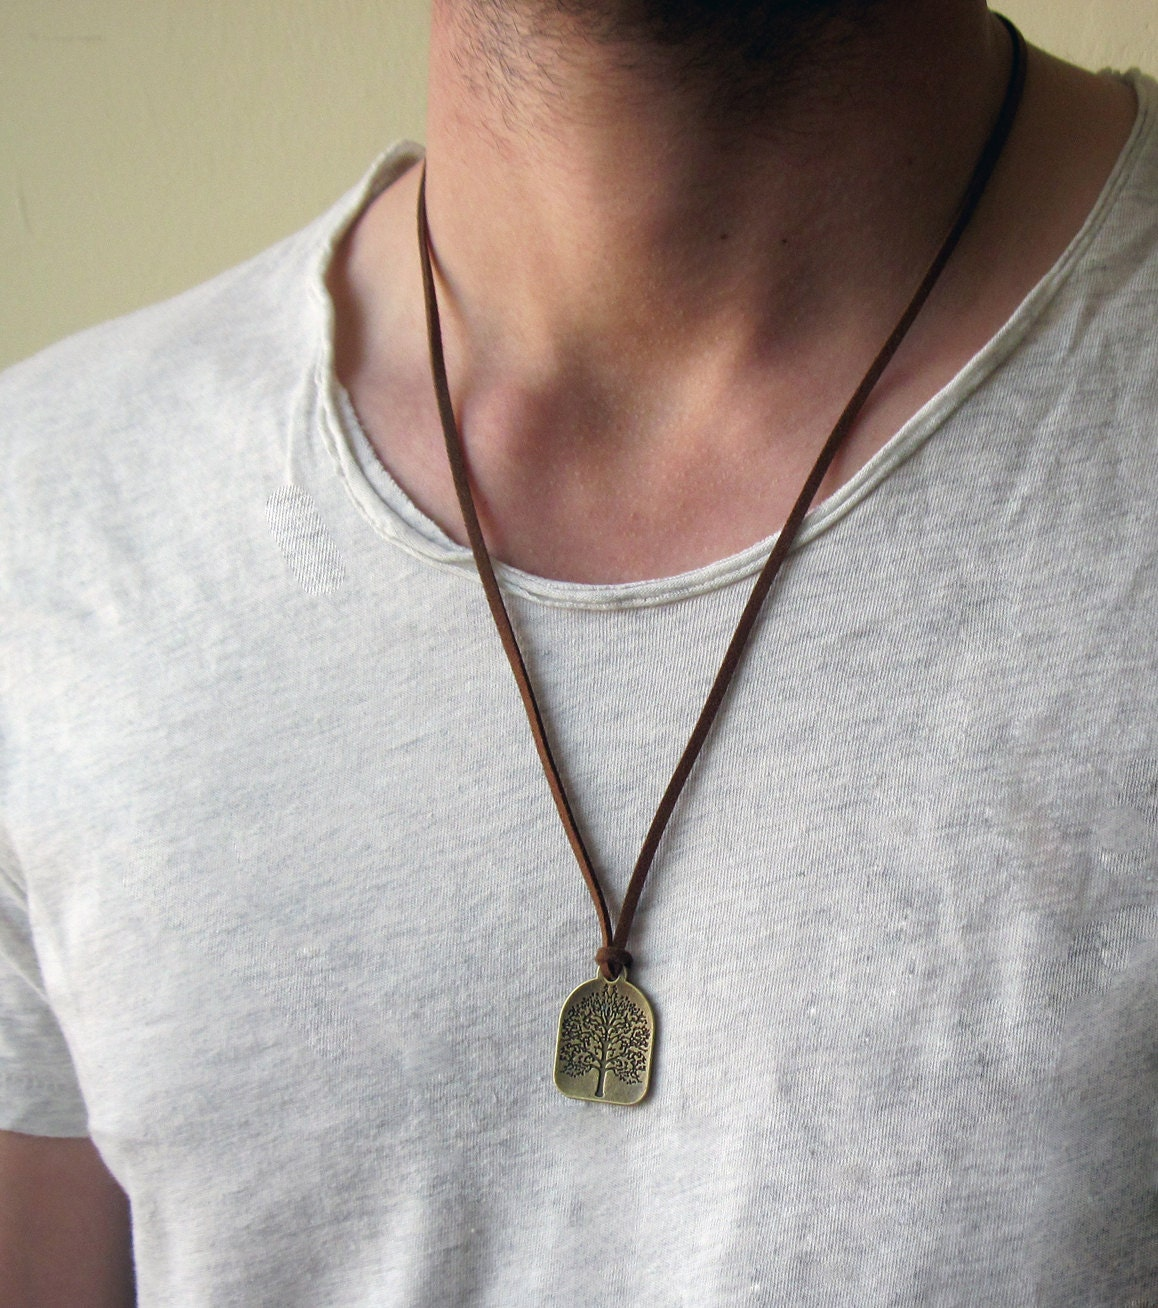 Men's religious jewelry is a thoughtful gift for Father's Day or a birthday, but there is no reason to wait for a special occasion to bring God's Word into the life of someone who needs extra strength.